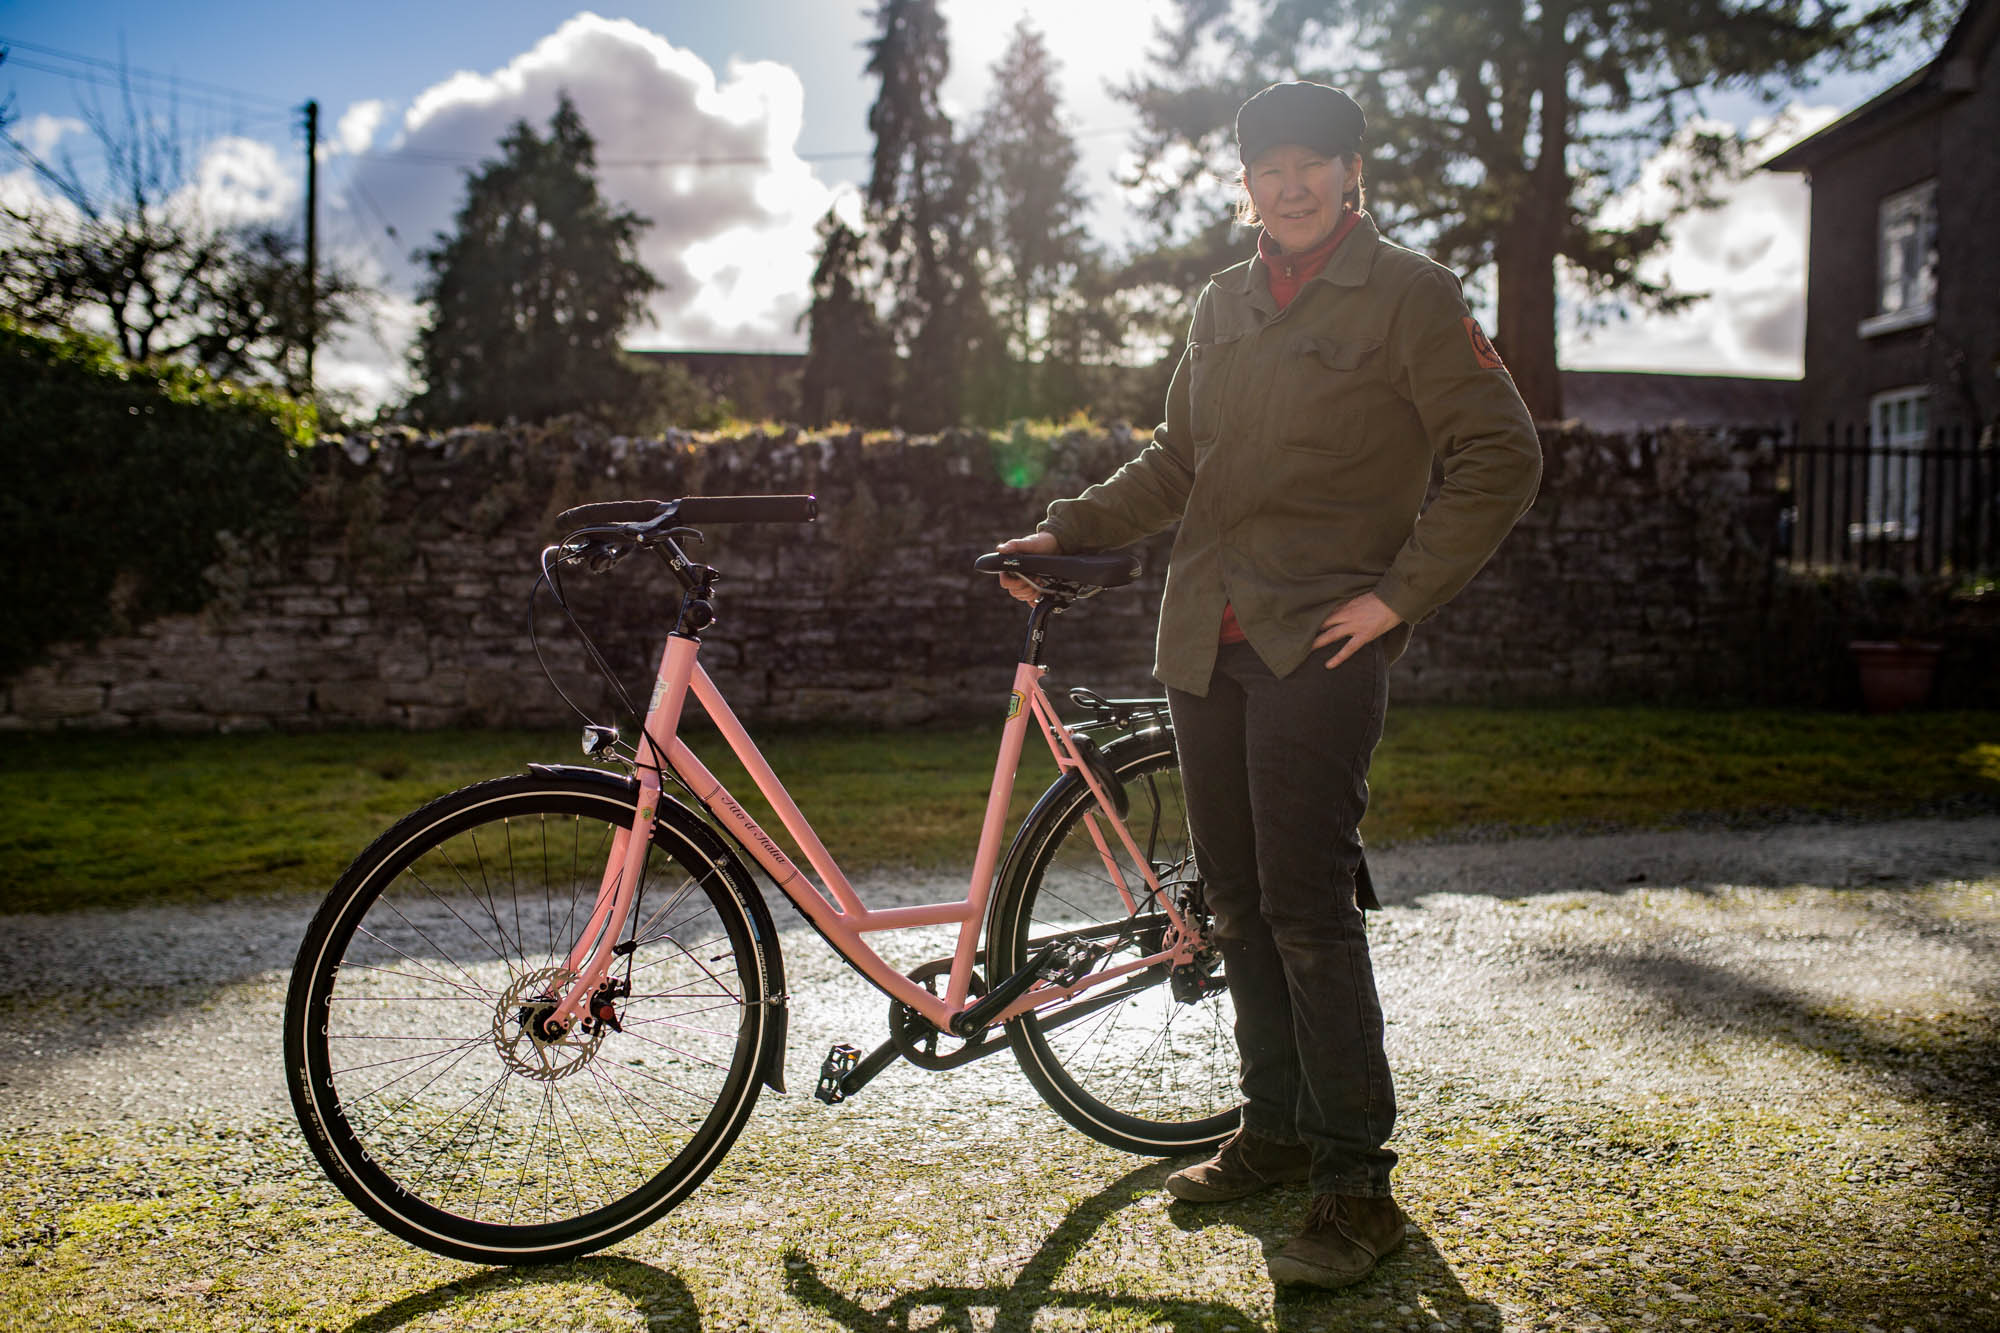 Easy to get on and off, the 'Tito d'Italia' as my Italian born customer has named his bike (in Giro d'Italia pink) features the  Jones  bar for varied hand positions, 8 nice 'n' low gears, a luggage rack and front hub dynamo lighting system.